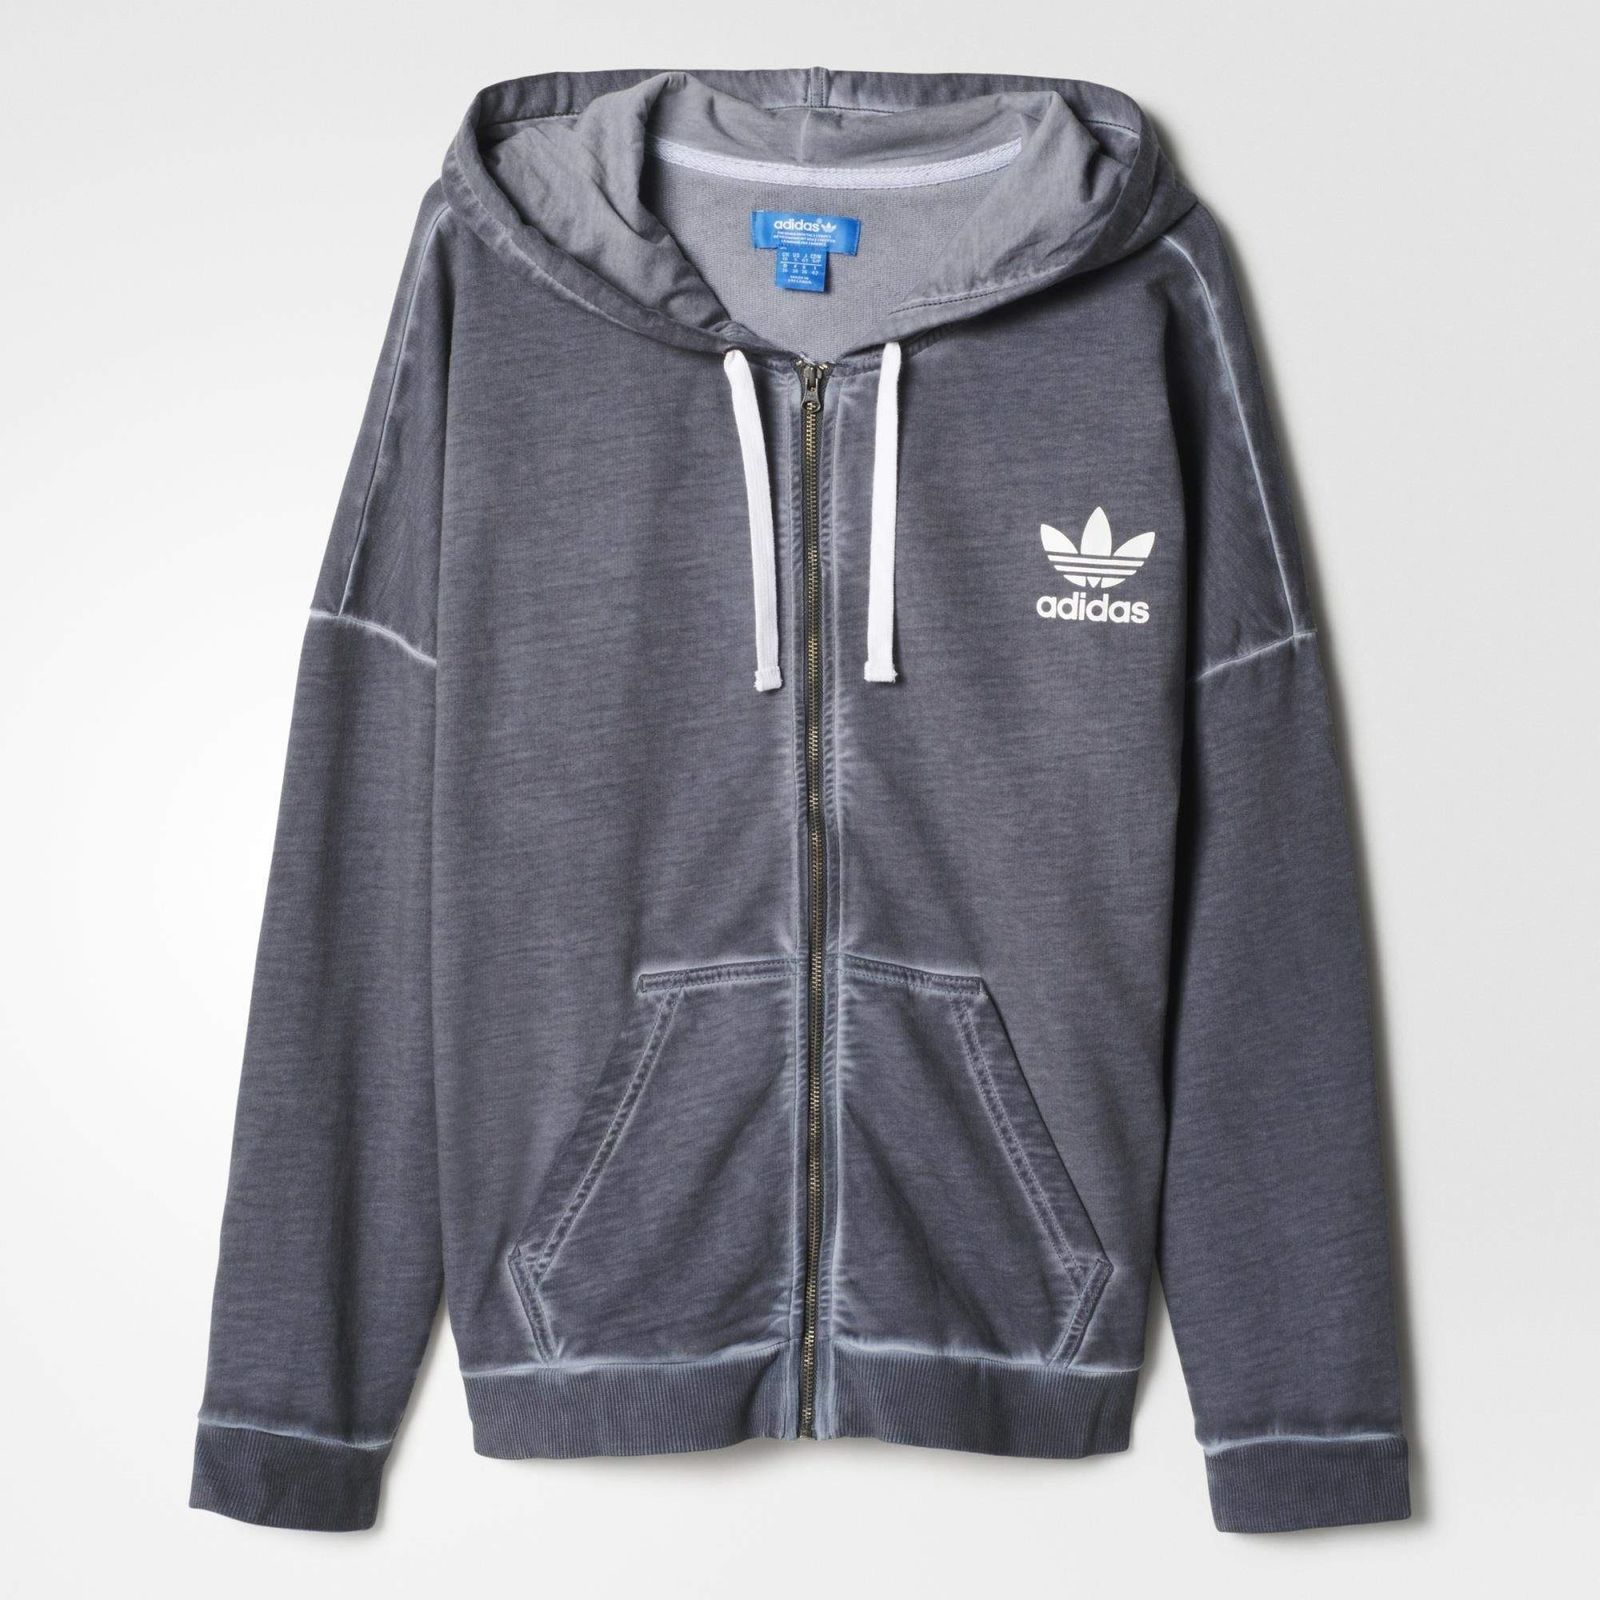 reputable site bb7a7 cc3c1 ADIDAS ORIGINALS DAMEN PE WASHED CREW HOODIE SWEATSHIRT ZIP PULLOVER JACKE  GRAU